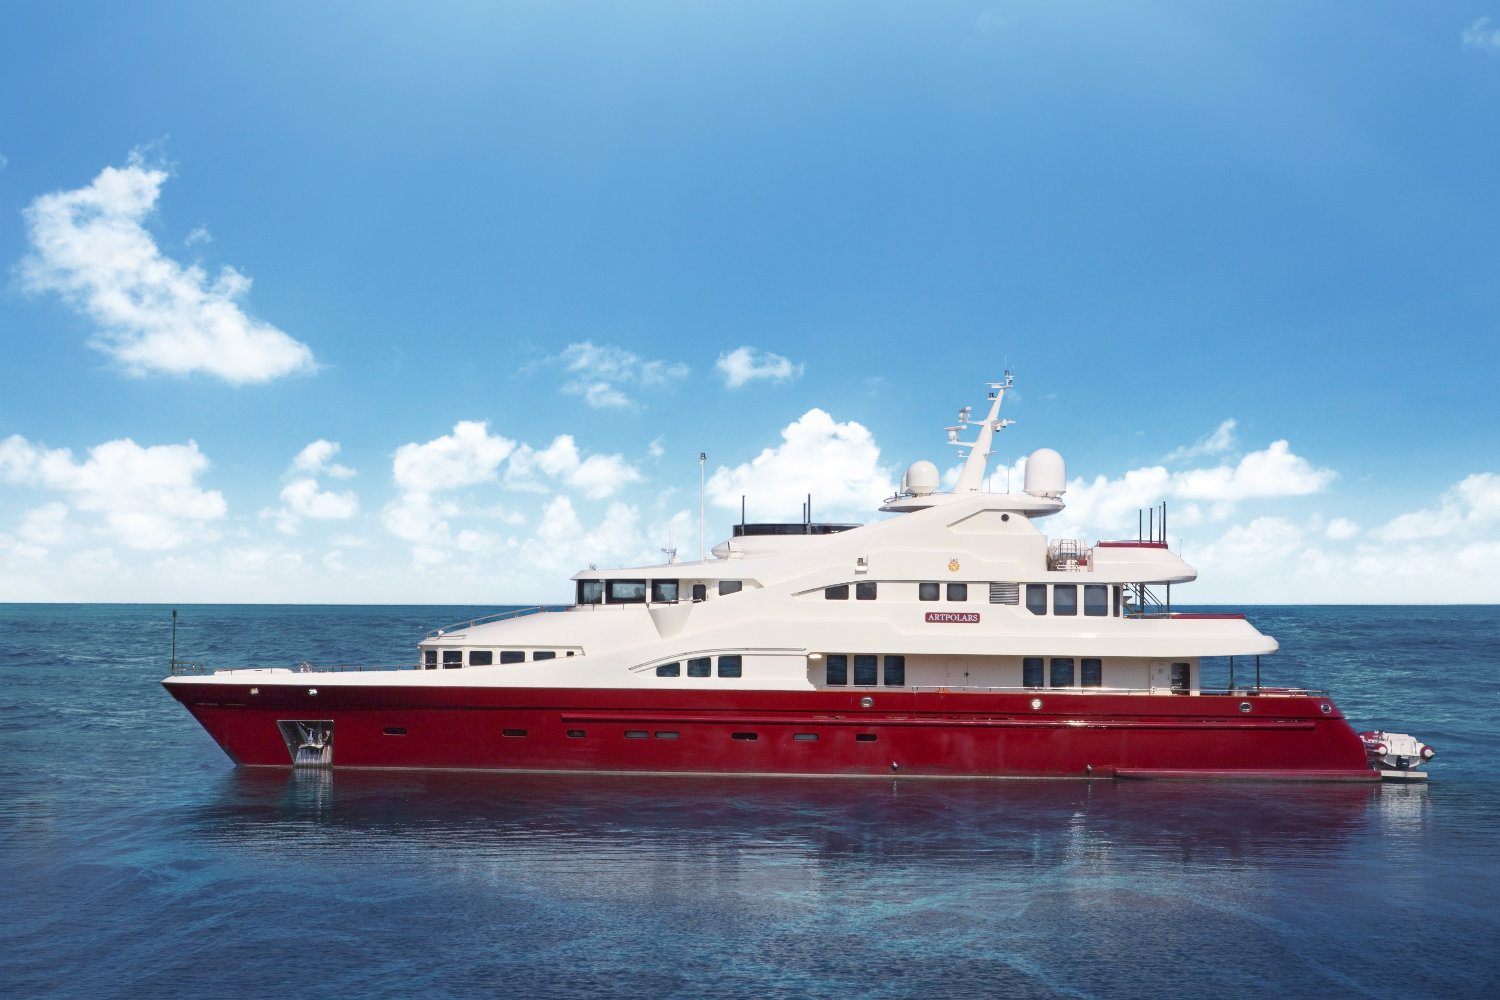 Lutron Lighting Takes to the High Seas in a 130-Foot Yacht ...